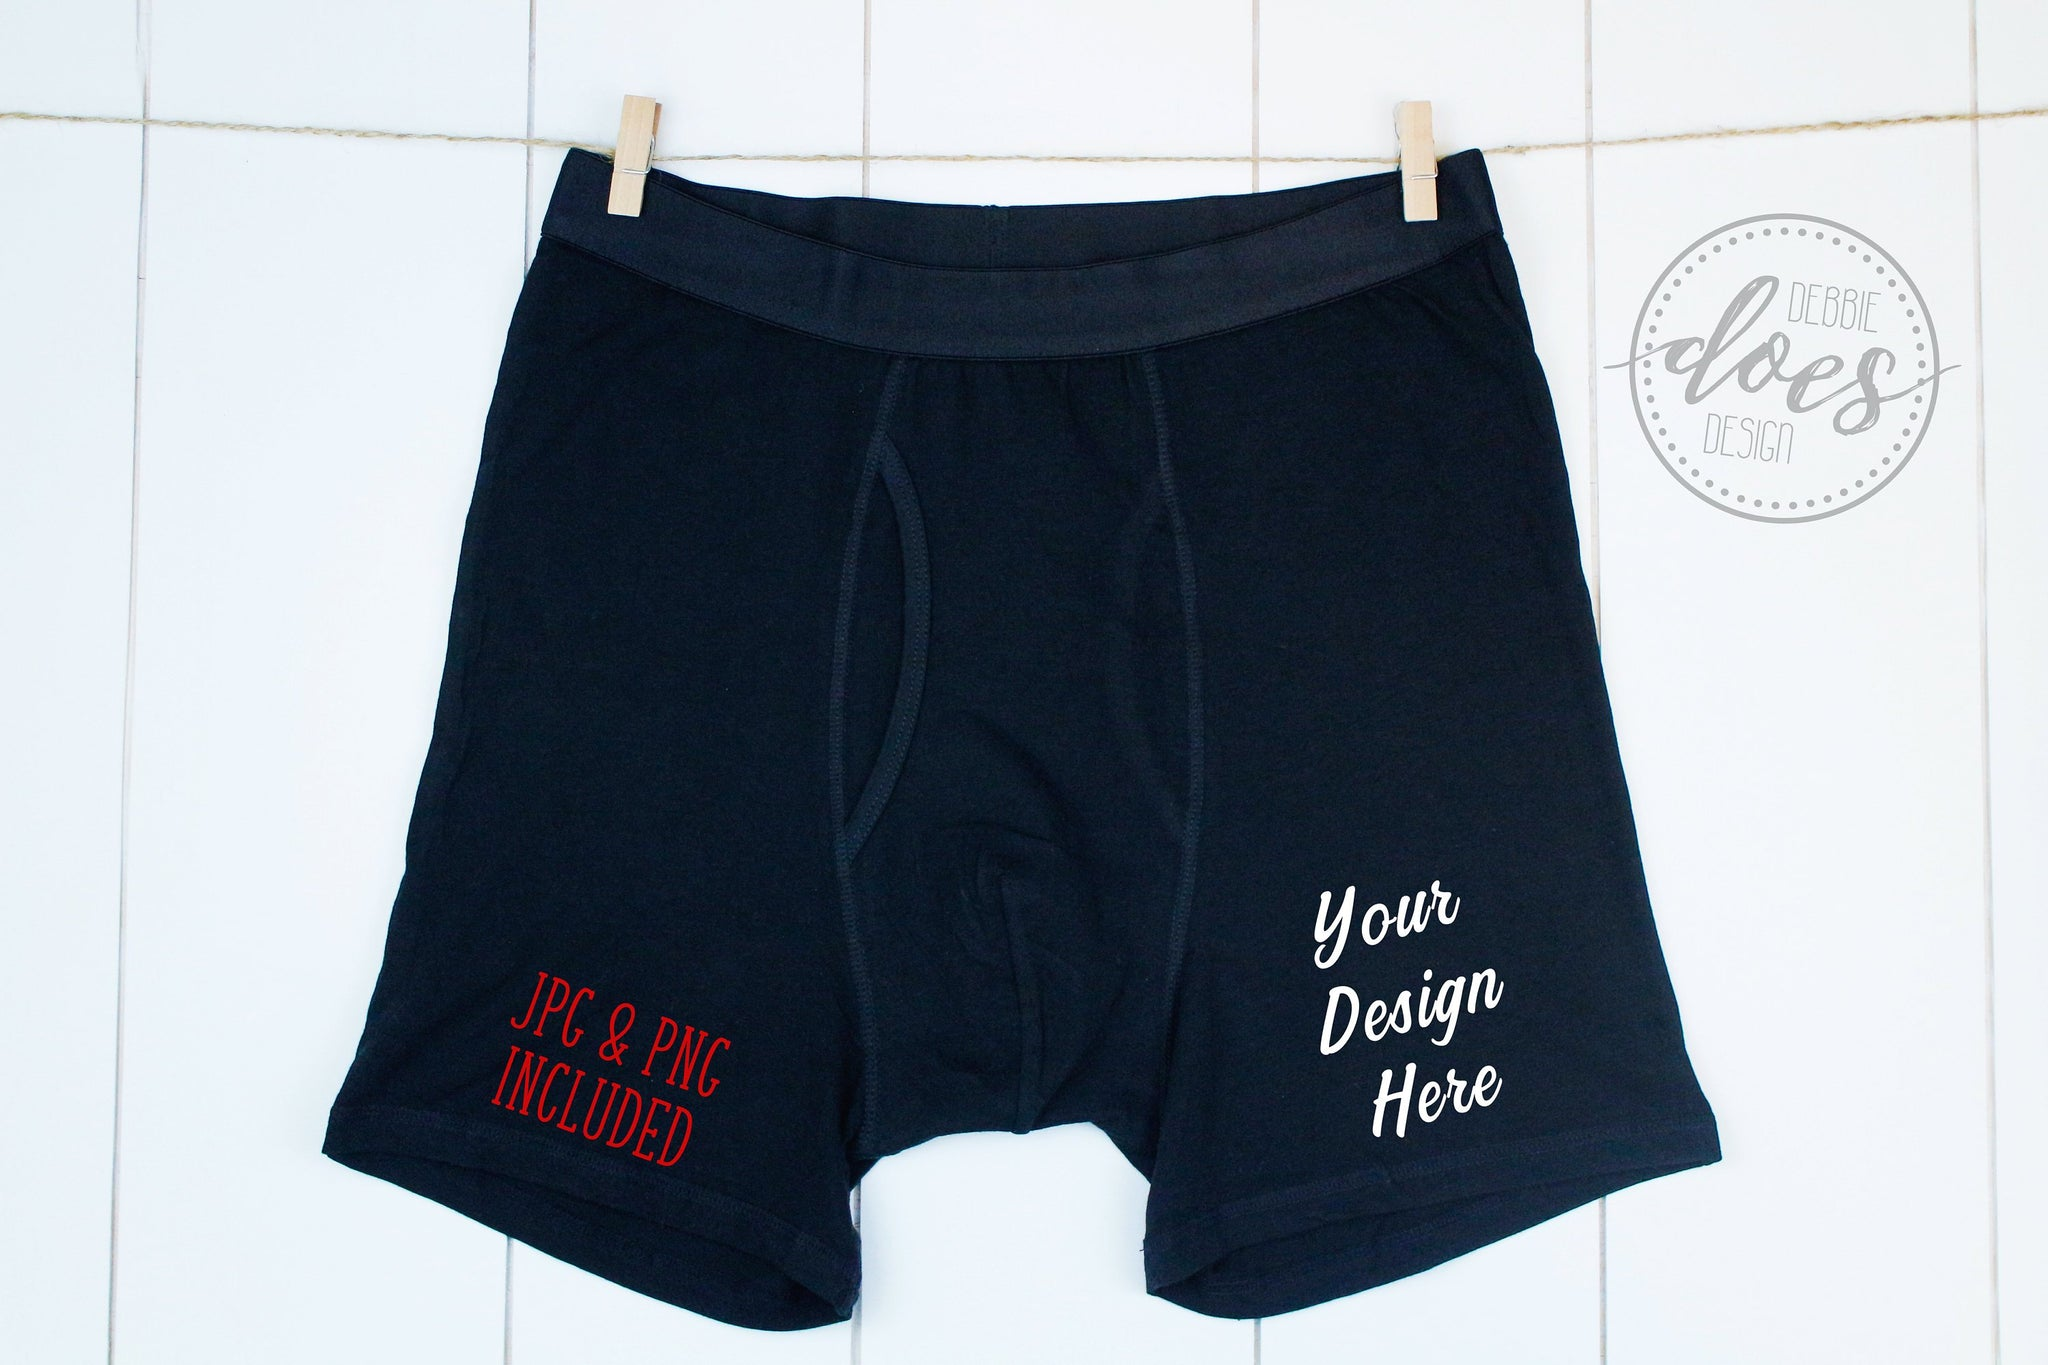 Black Boxer Briefs Mockup on Clothesline | Valentines | Blank Mockup Photo Download